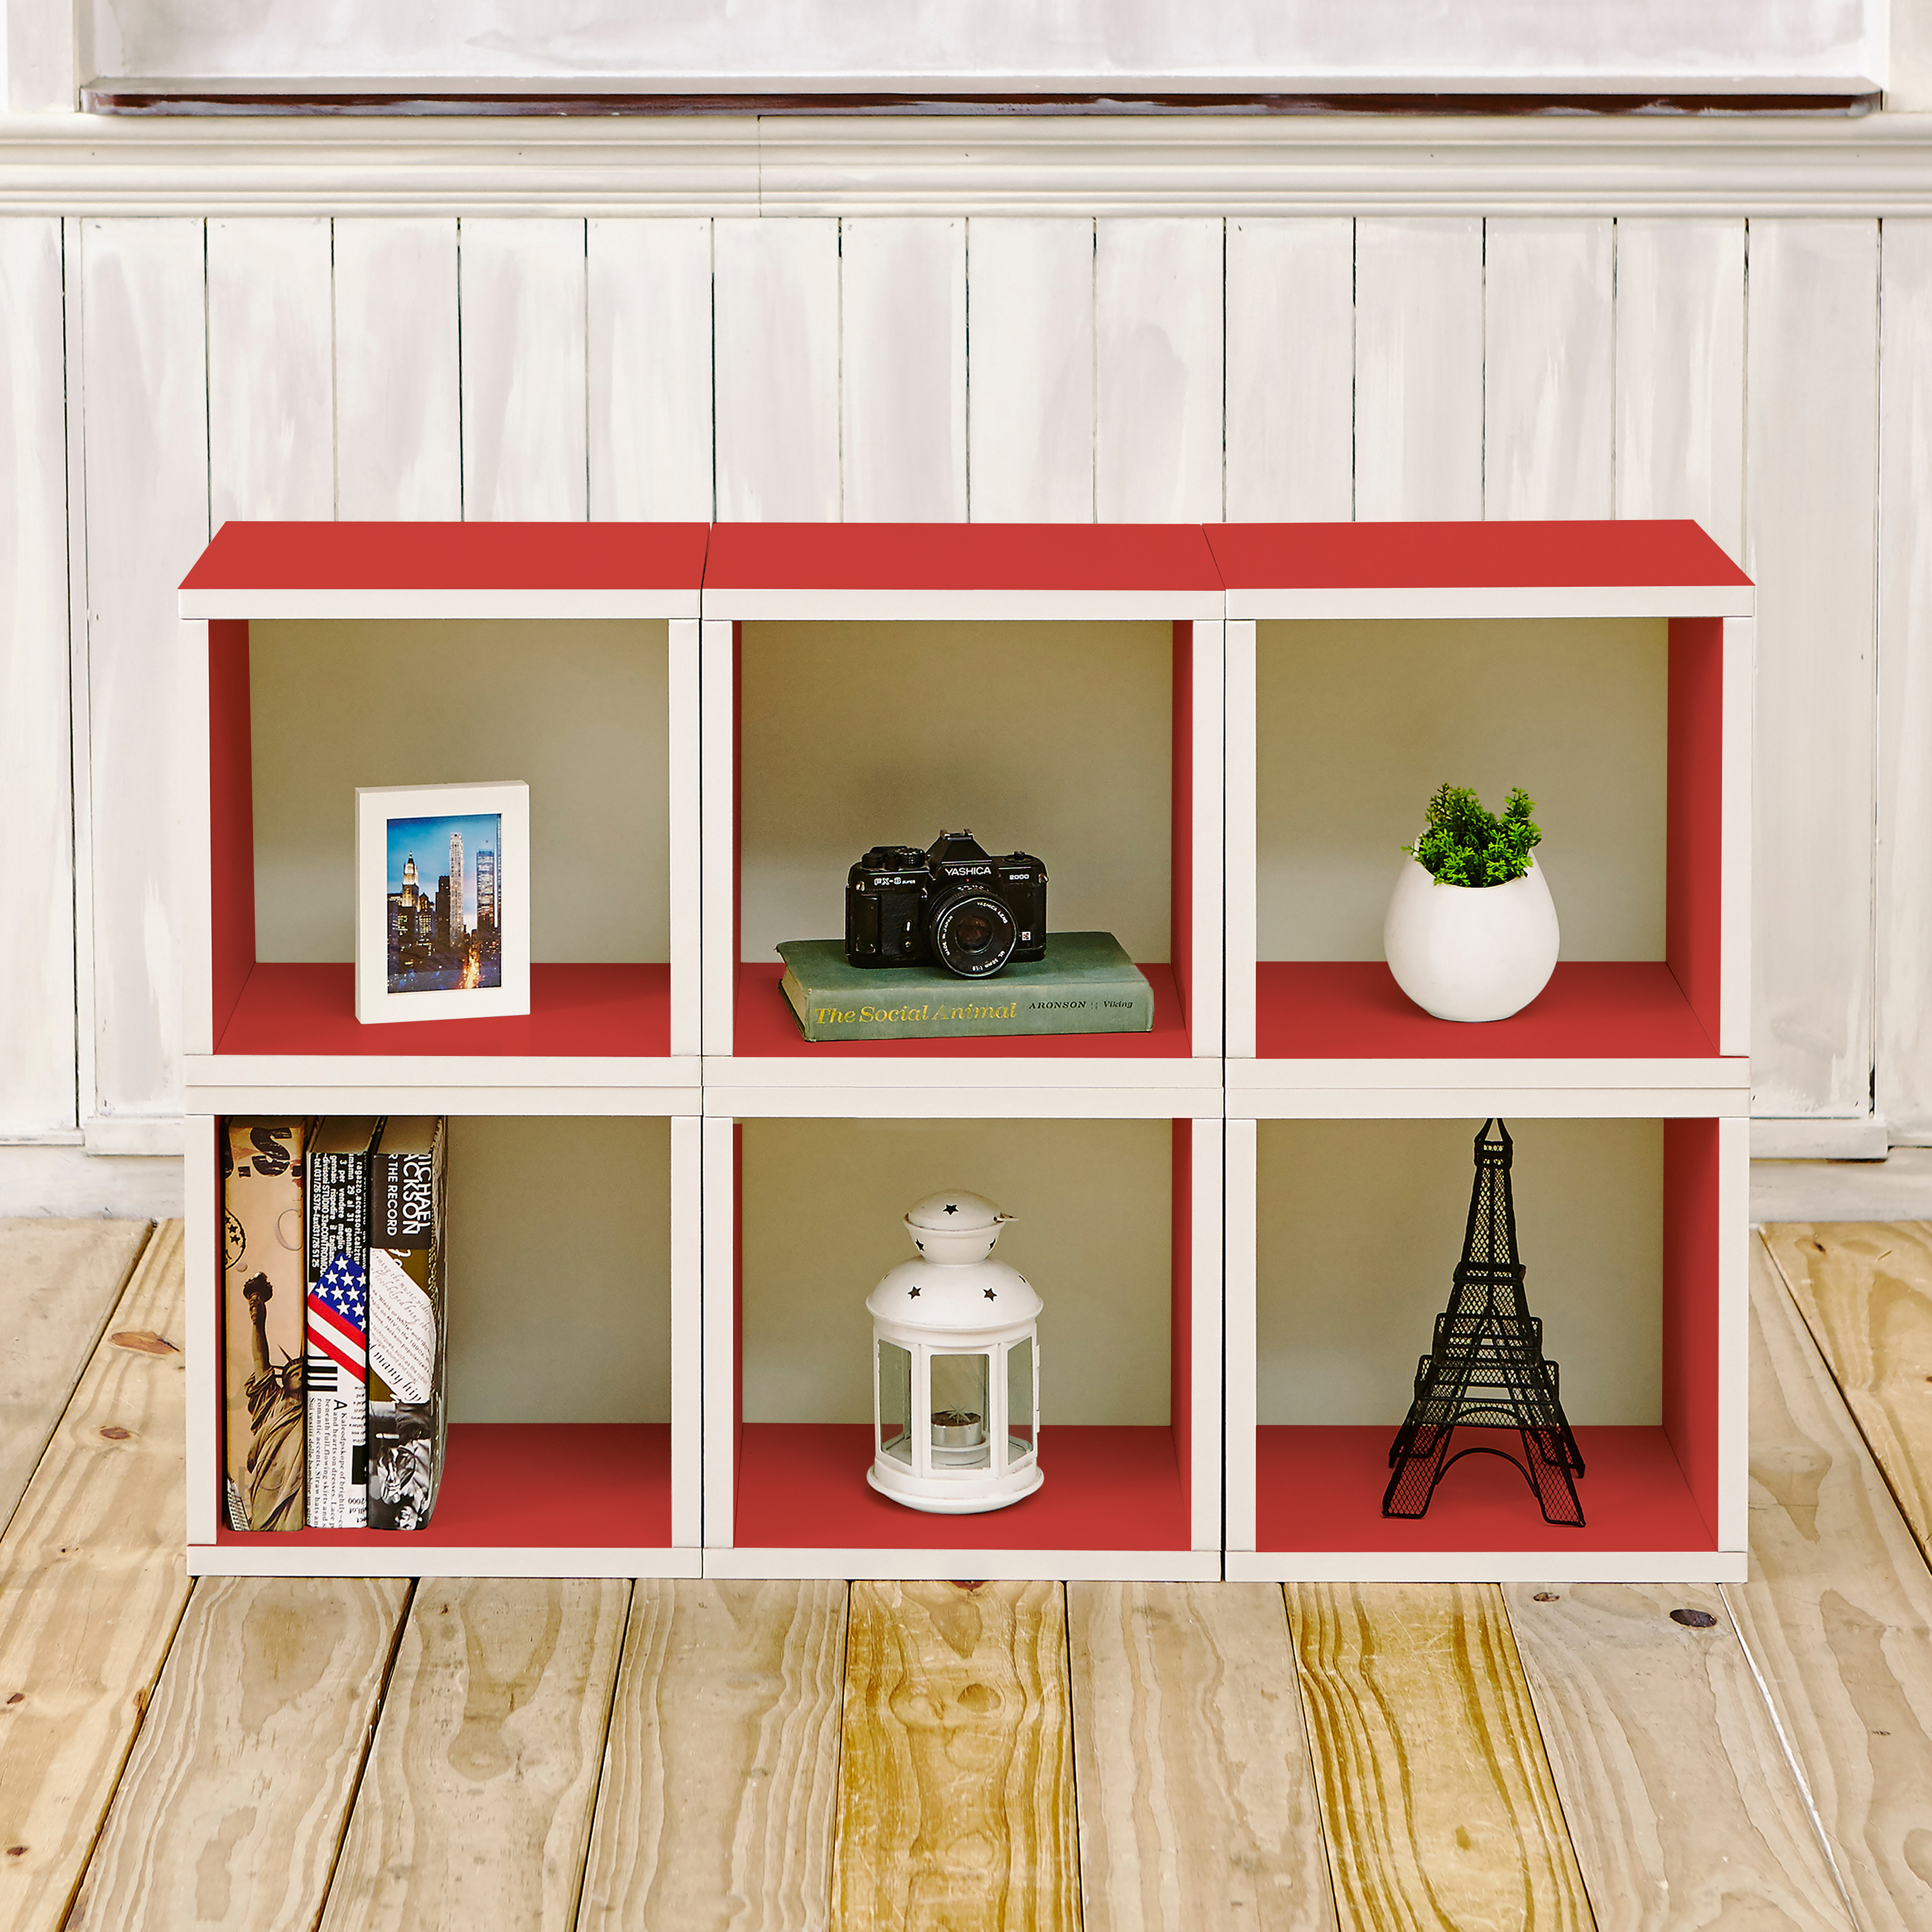 Way Basics Eco Stackable Modular Storage Cubes (Set of 6), Red - Tool-Free Assembly - Lifetime Guarantee